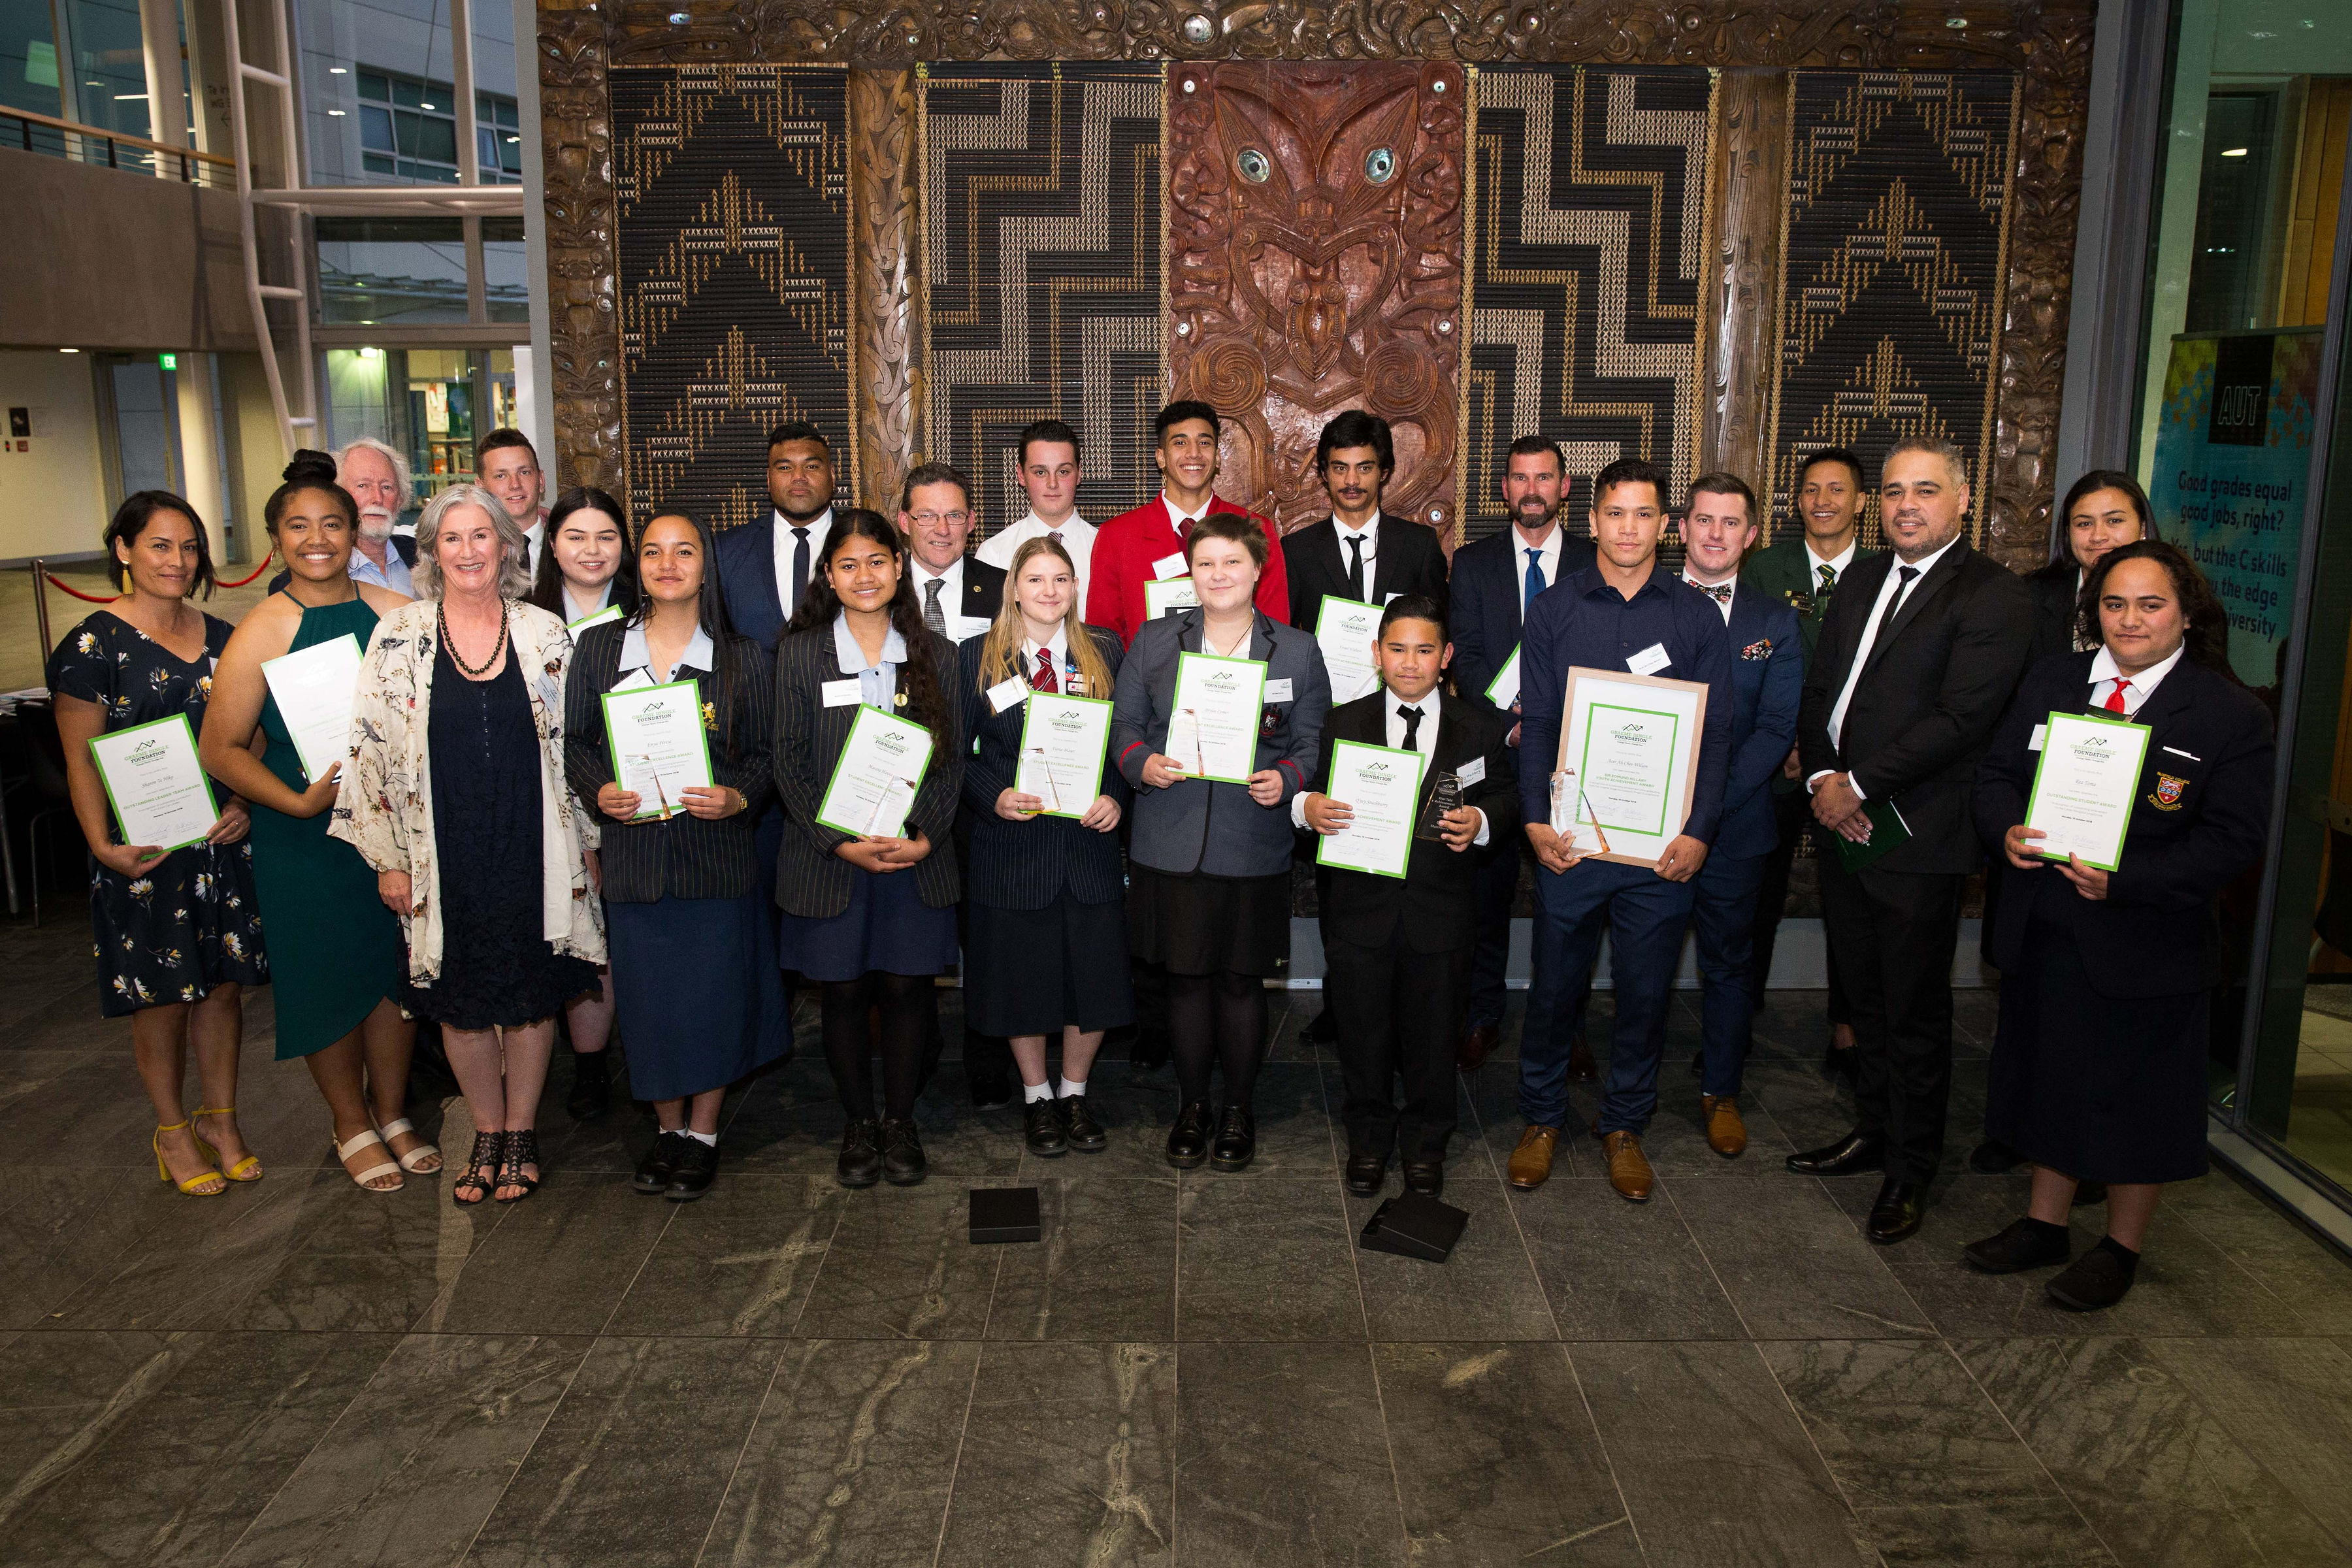 Graeme Dingle Foundation Excellence Awards 2018 Honours Exceptional and Resilient Young New Zealanders